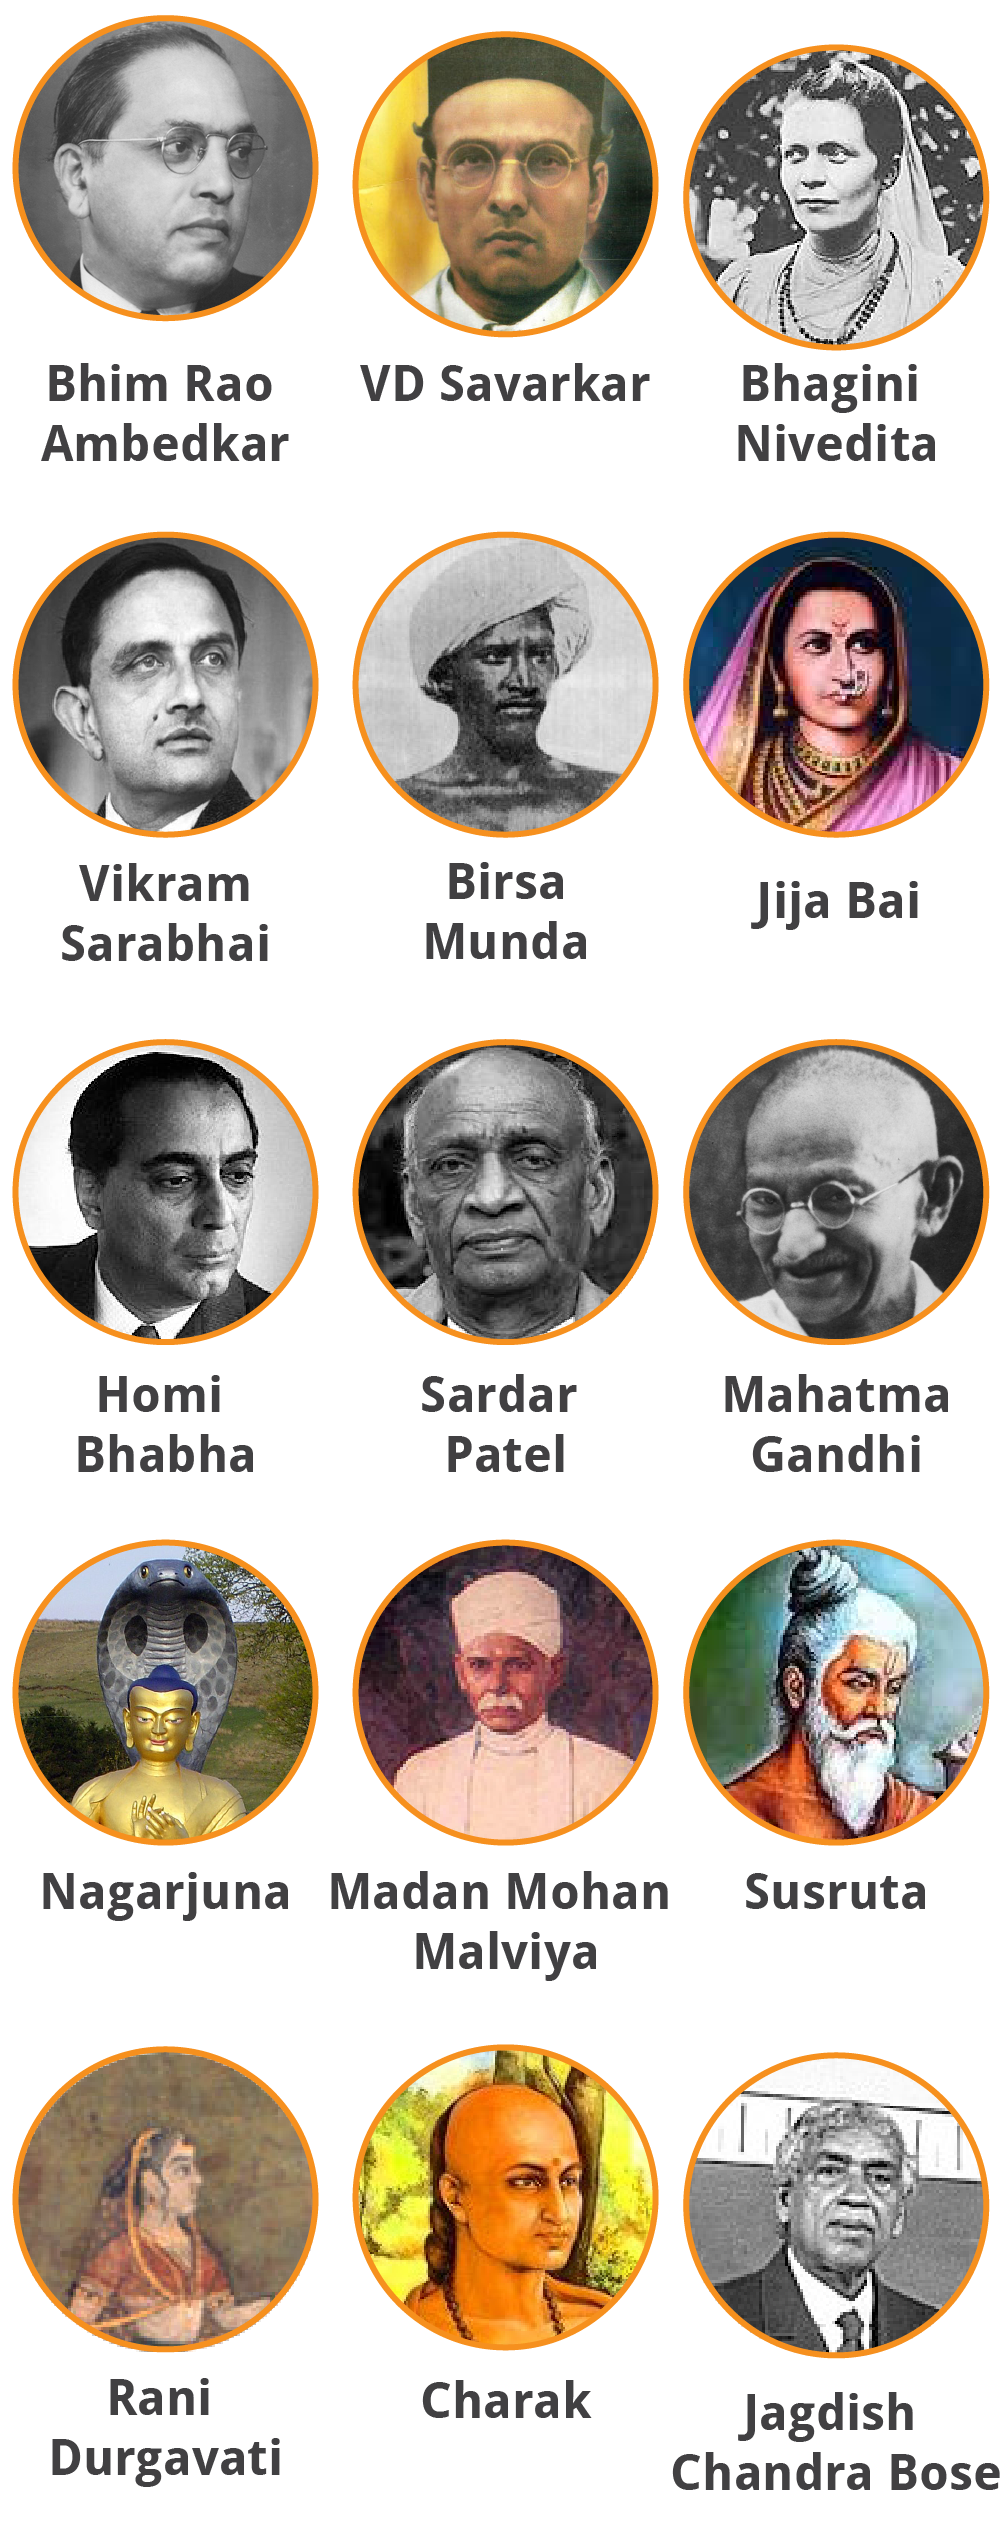 """The 15 personalities listed in the """"Hamare Gaurav"""" sections of environmental science textbooks for Classes 3, 4 and 5 do not include a single Muslim. In the textbooks, the image used for Nagarjuna was also incorrect."""